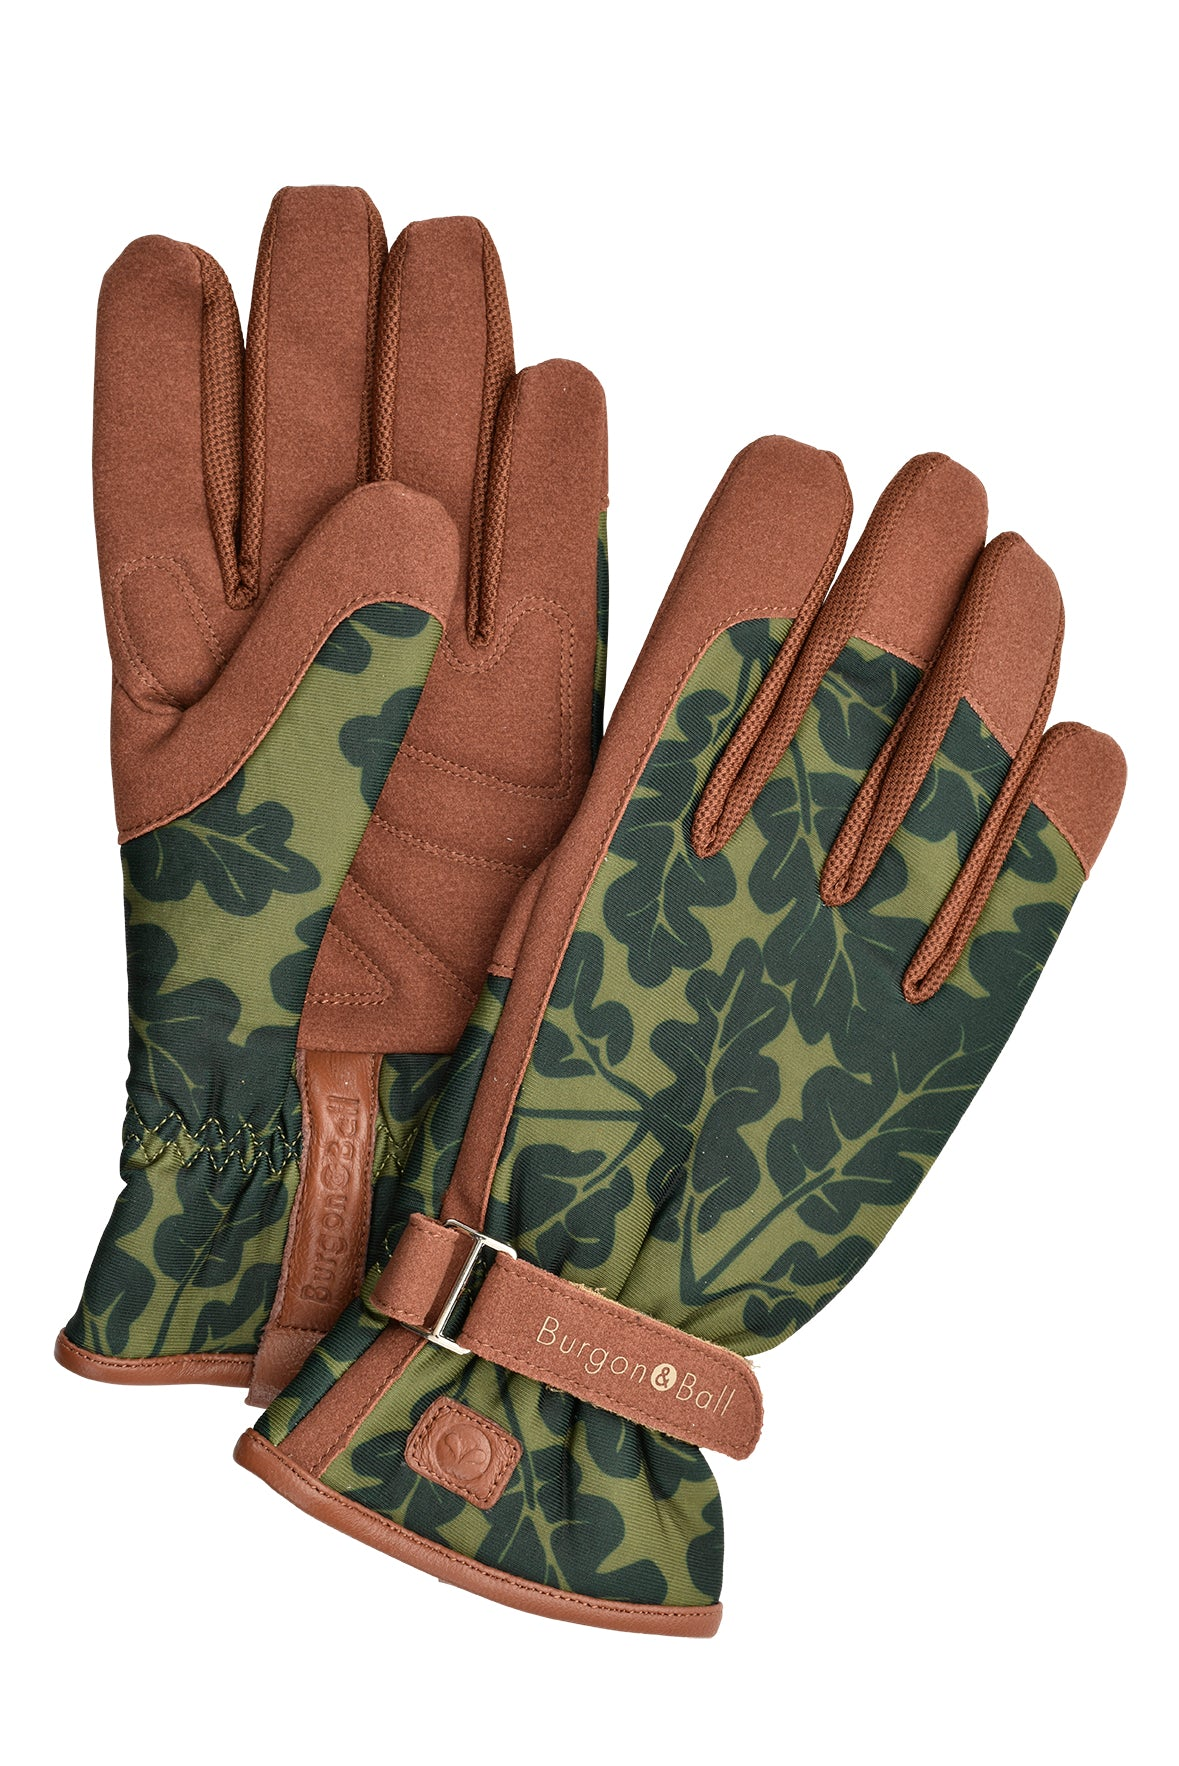 Love the Glove - Oak Leaf Moss